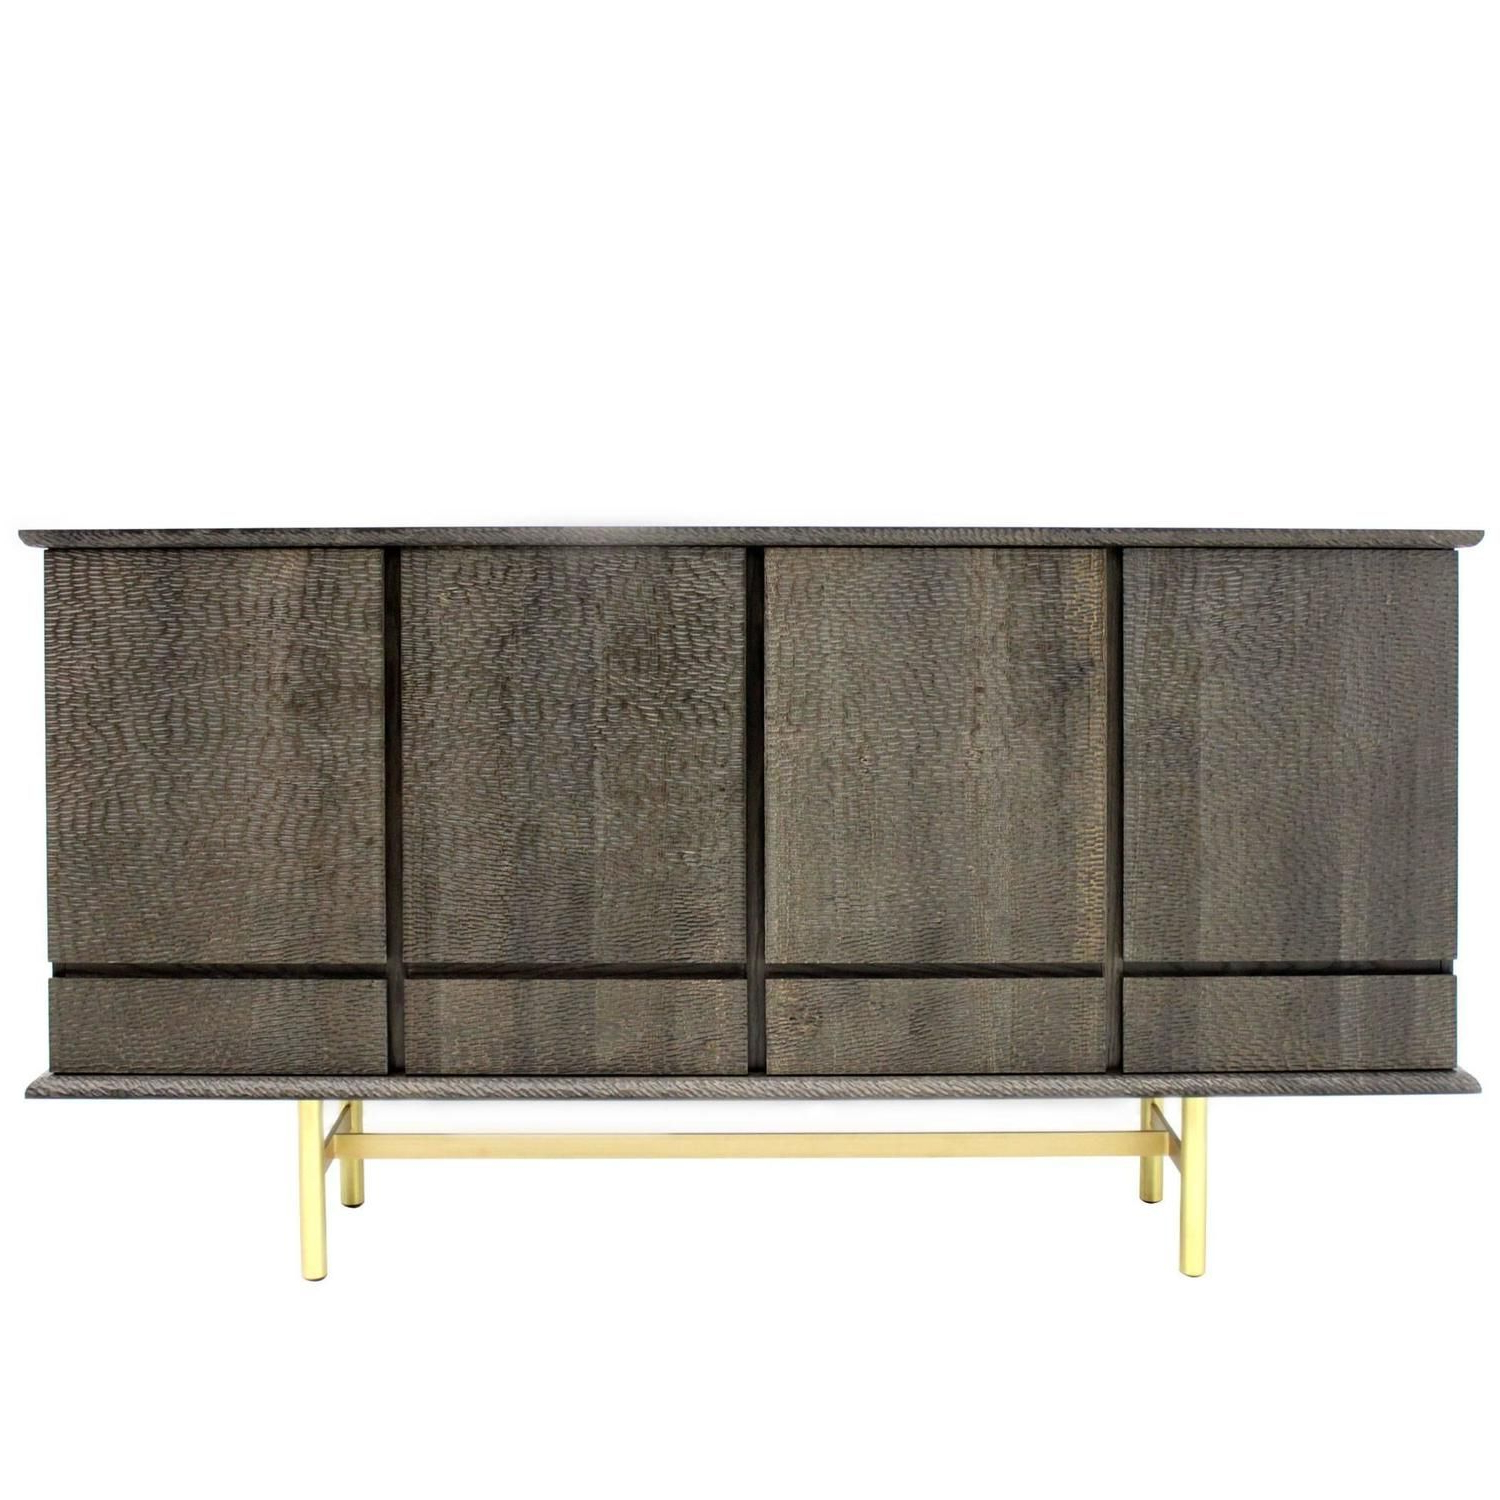 2019 Iron Sideboards In Modern Italian Textured Walnut Wood And Iron Four Door Sideboard (Gallery 10 of 20)